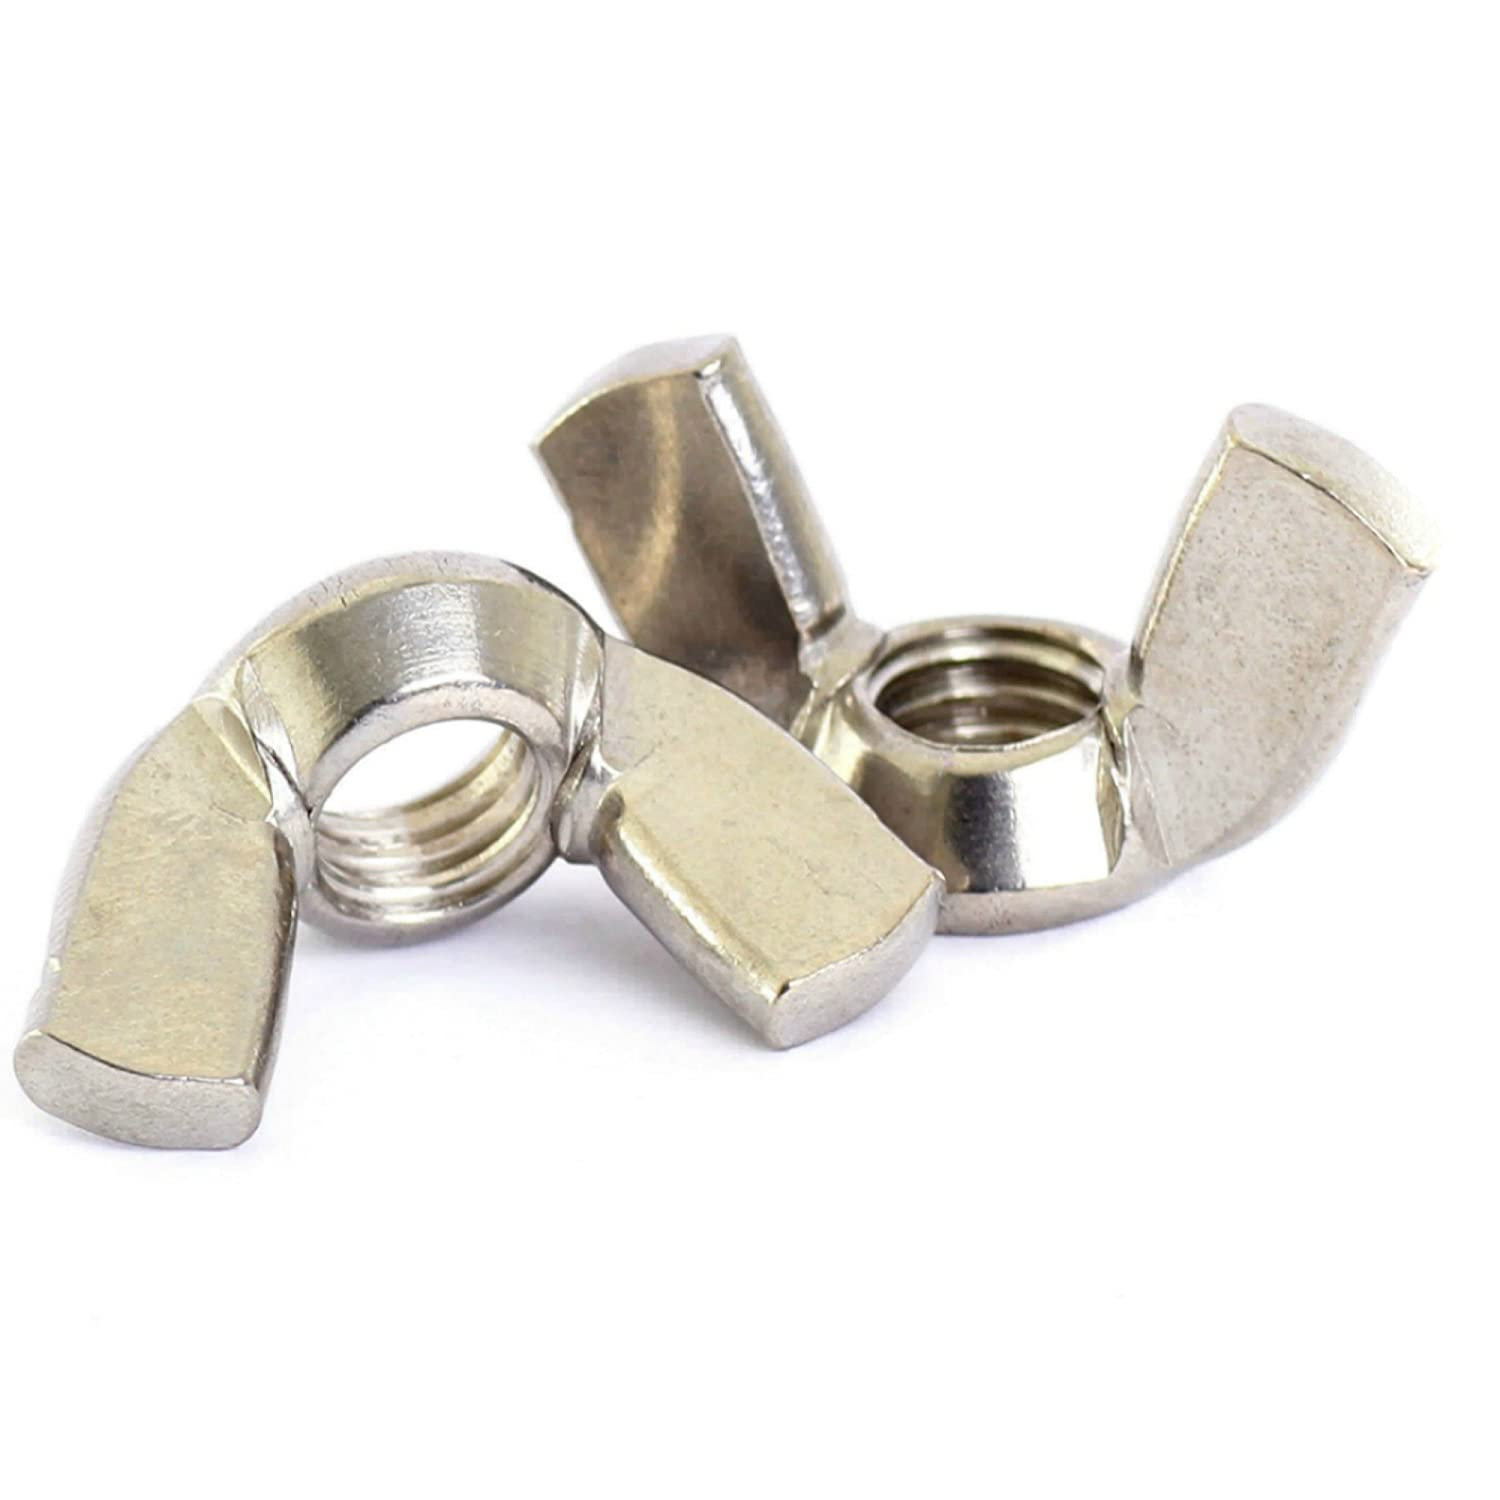 Bolt gift Base 12mm Max 48% OFF A2 Stainless Steel Nut Wing Nuts DIN 31 Butterfly